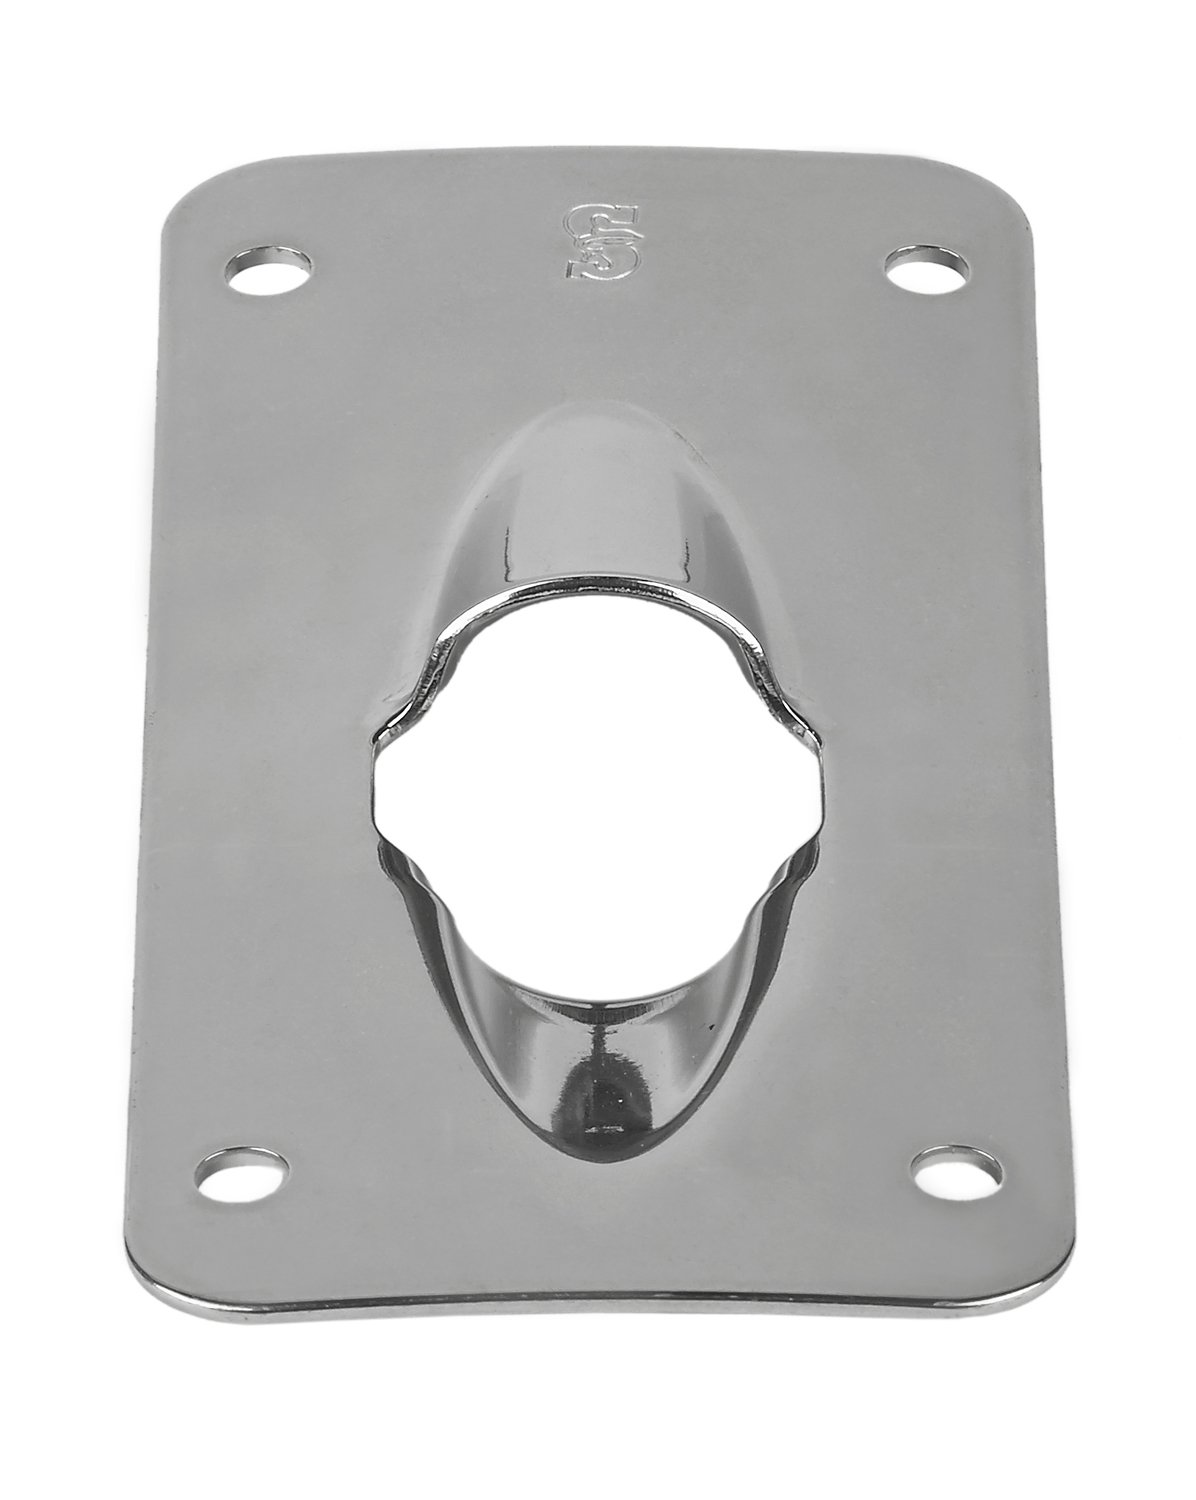 Schaefer Stainless Steel Curved Exit Plate for 3/4-Inch (19mm) Halyard